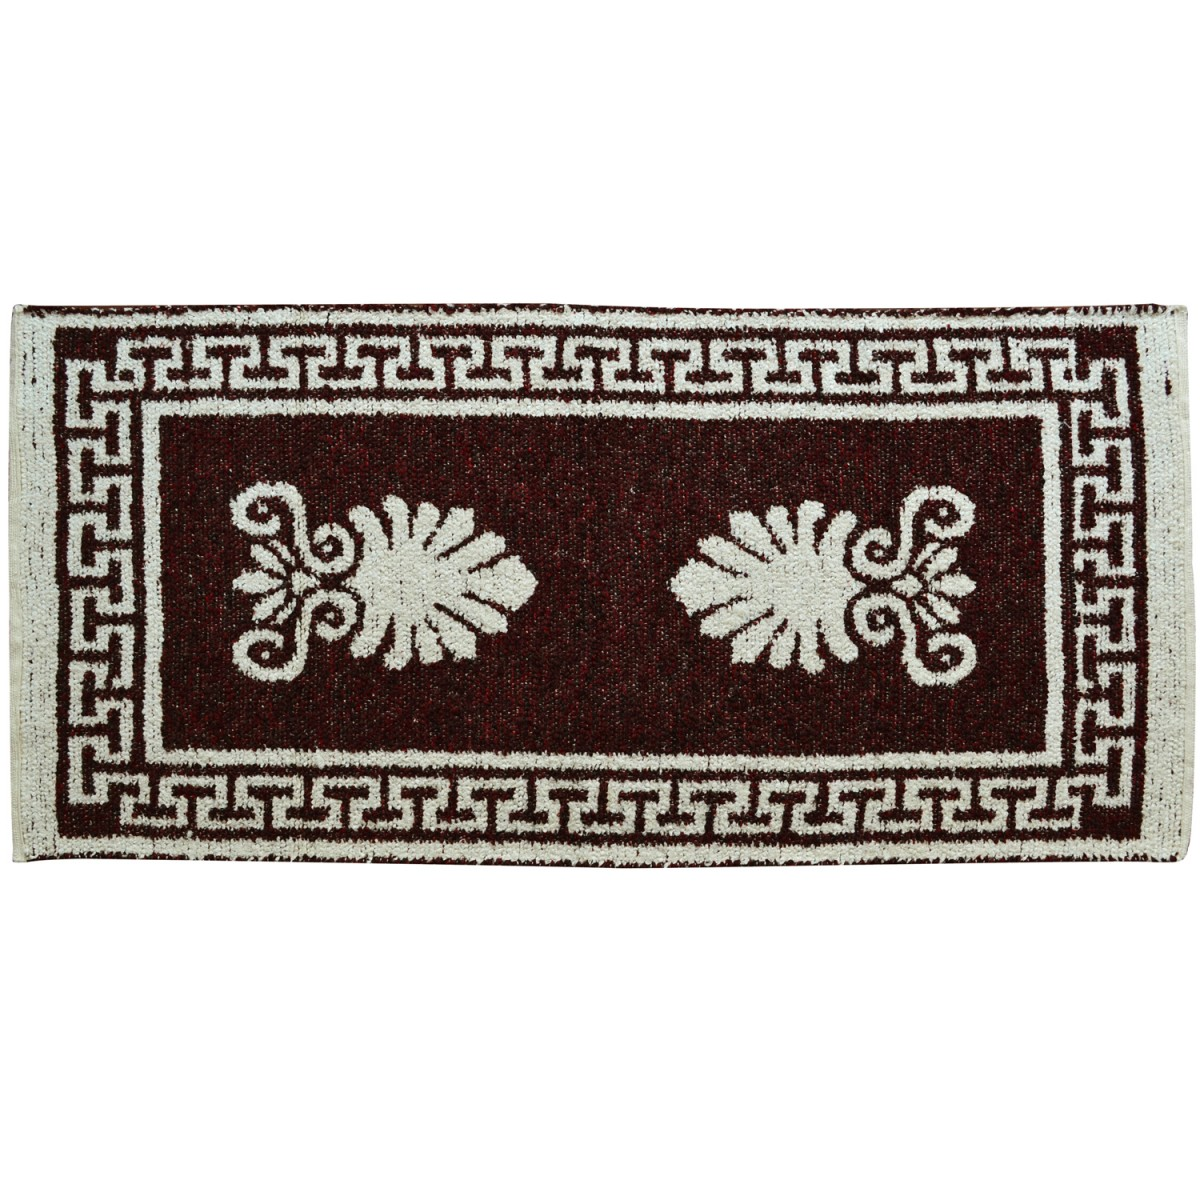 Acroceramo_and_Greek-Key_Two-Sided_Rug-Red-1